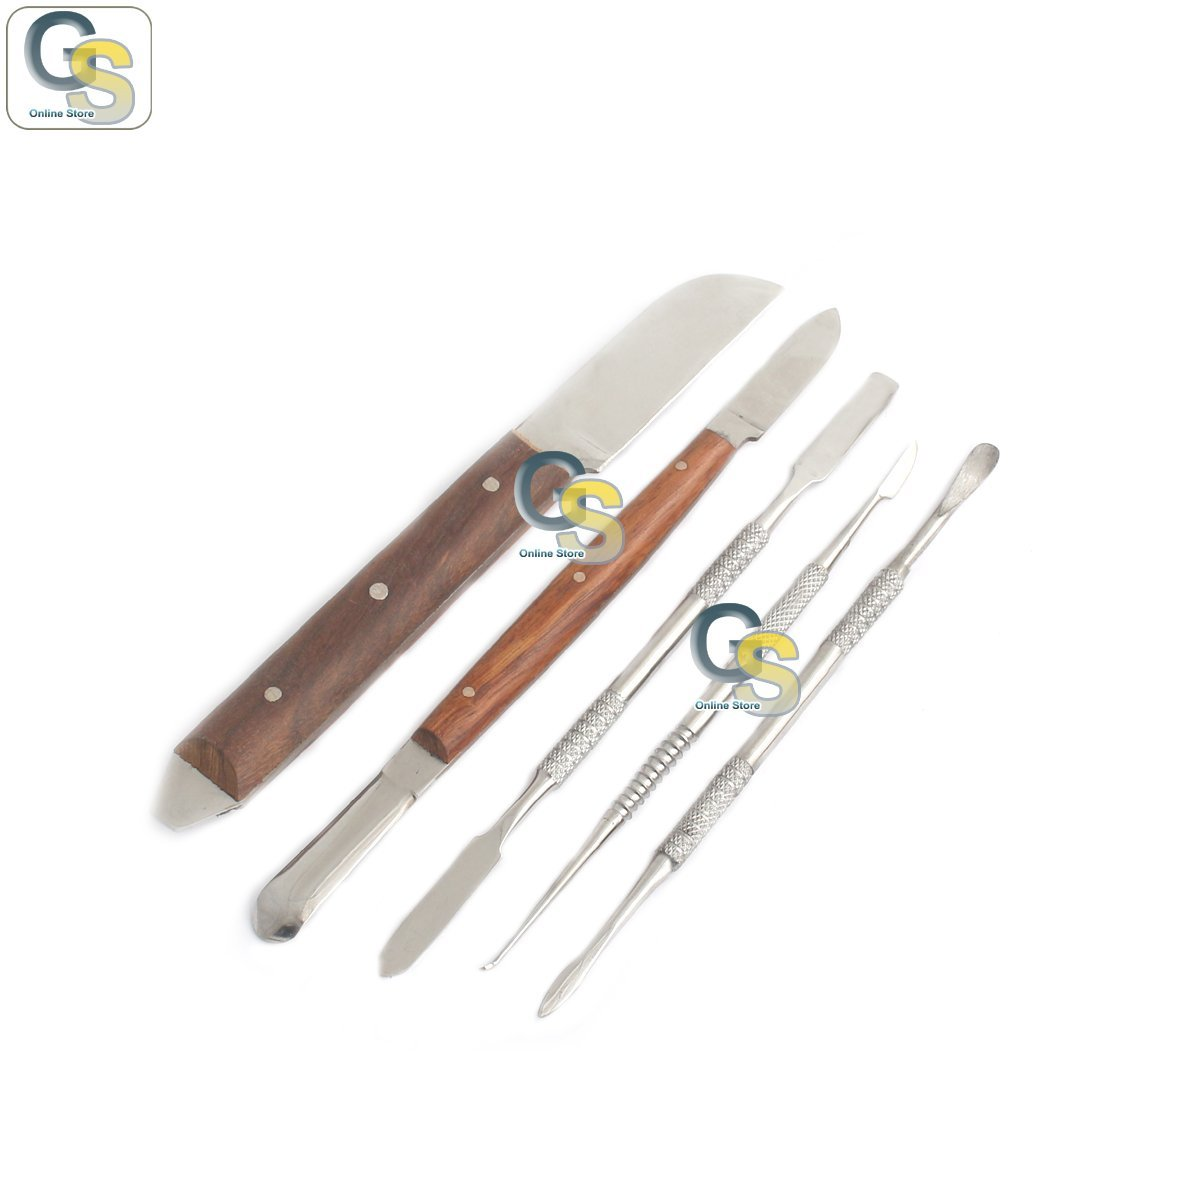 G.S LAB Under blast sales WAXING Instruments Laborator Limited time trial price KIT Stainless Steel